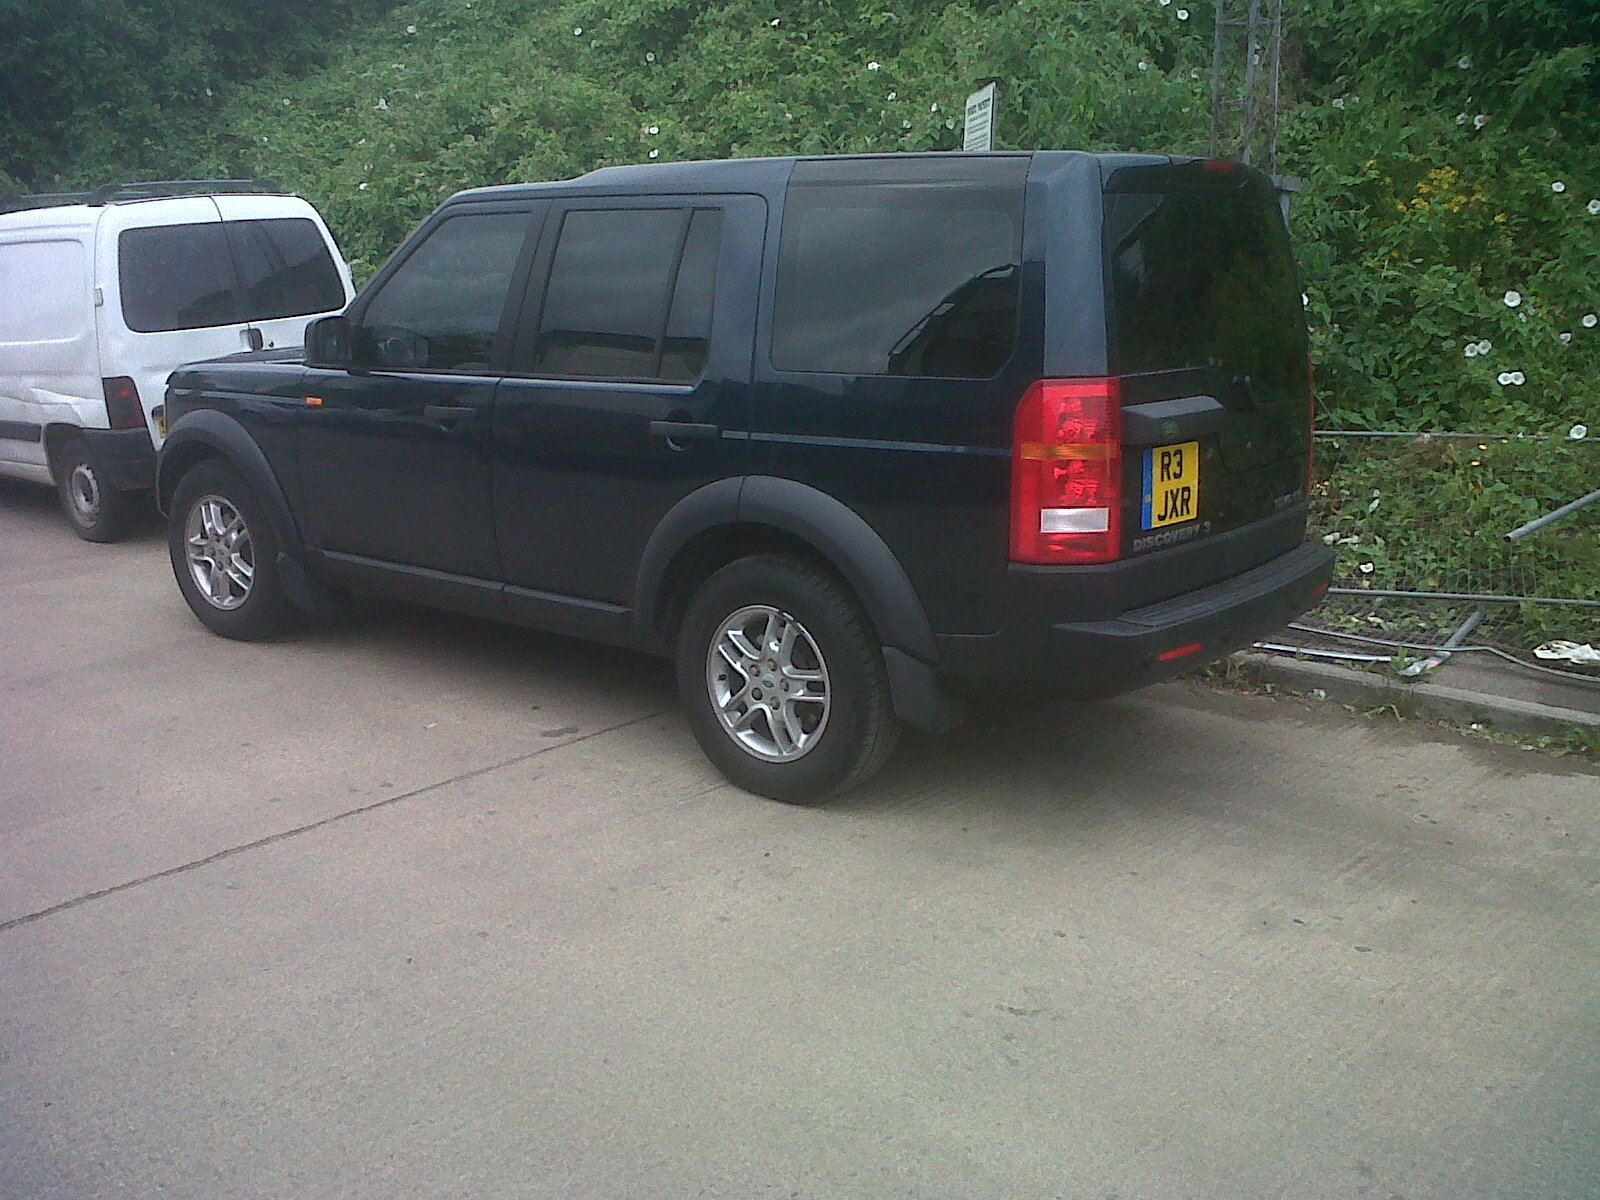 #discovery #4x4 #landy #farm #windowtints #hammersmith